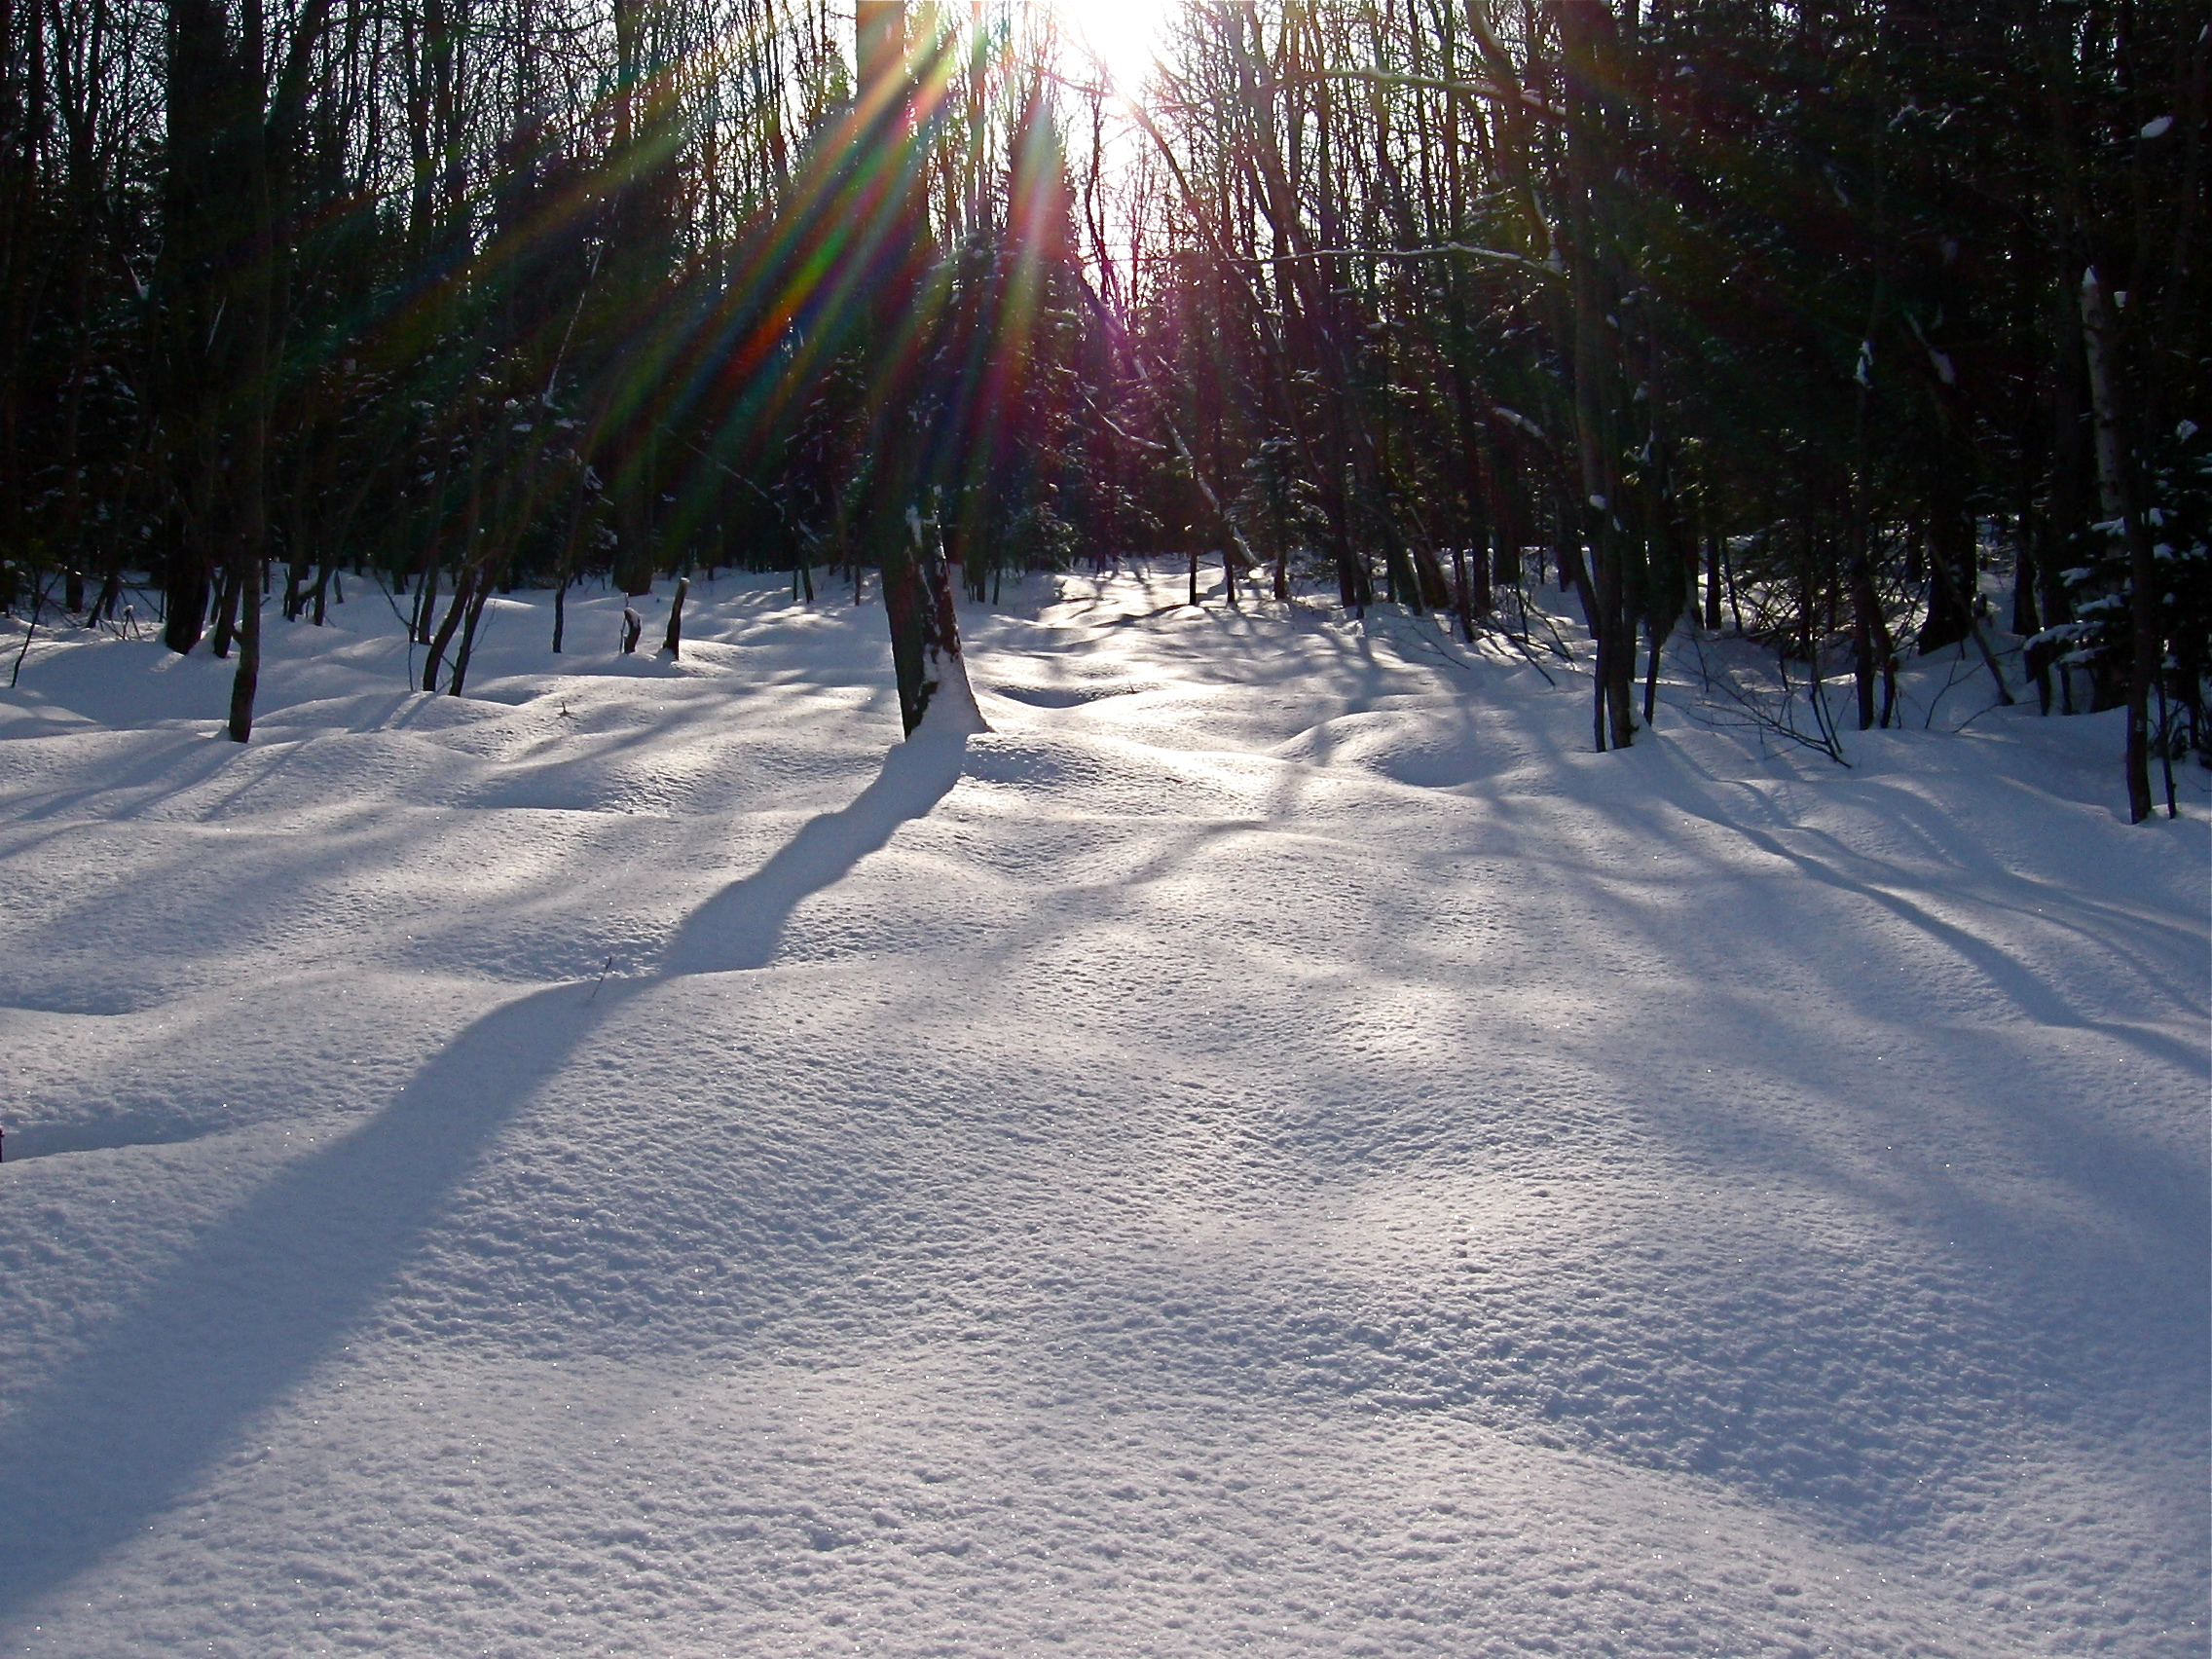 Snow on the ground, Flare, Ground, Ice, Nature, HQ Photo